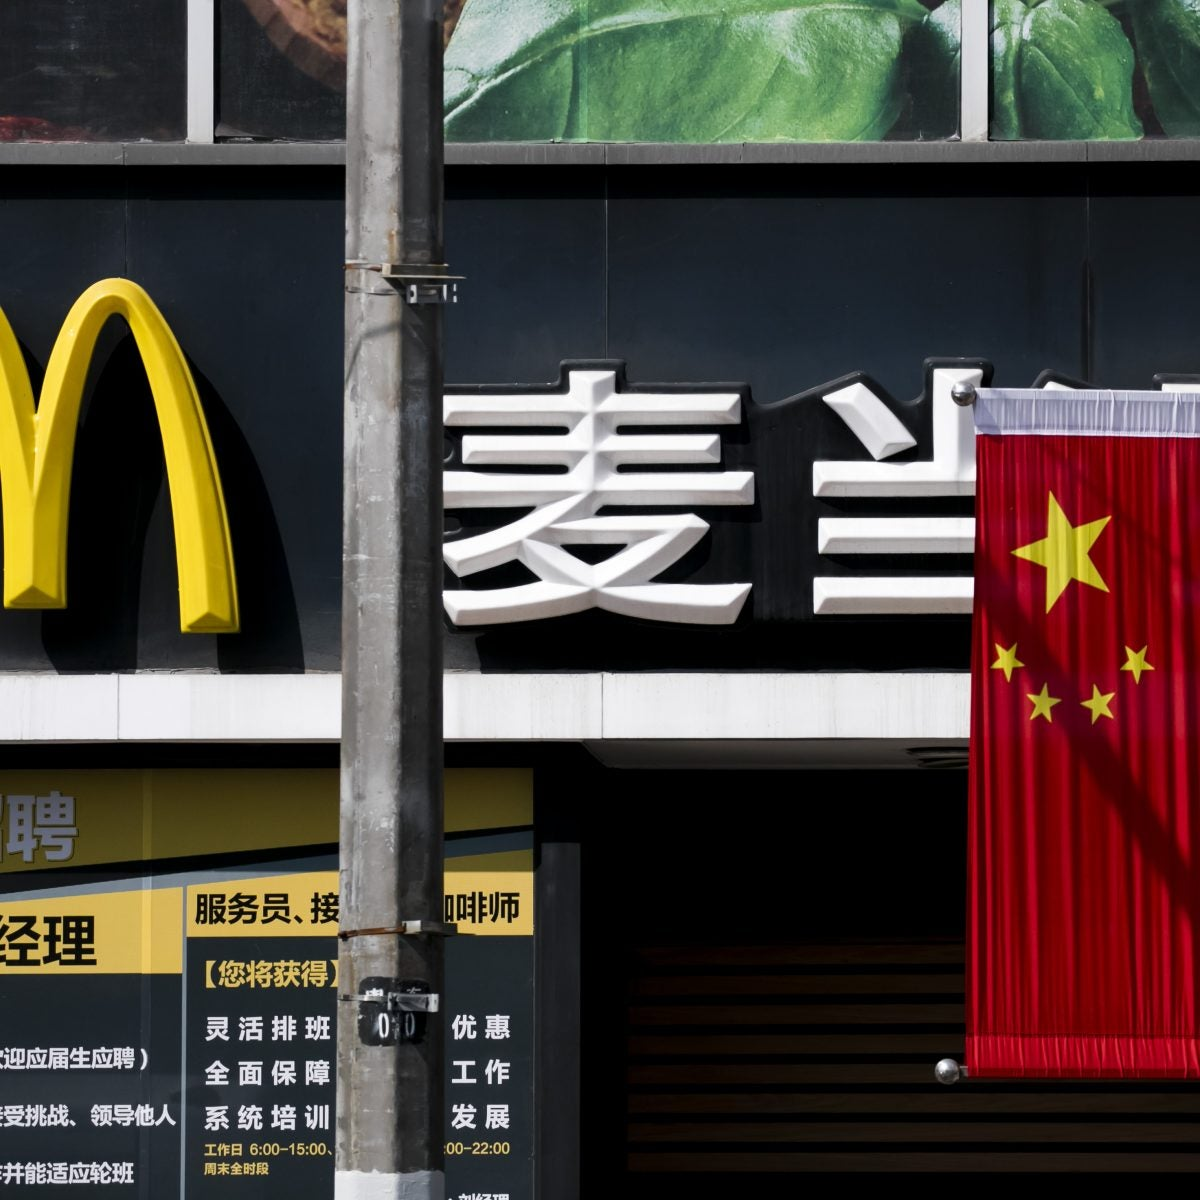 McDonald's Apologizes For Restaurant's Ban On Black People